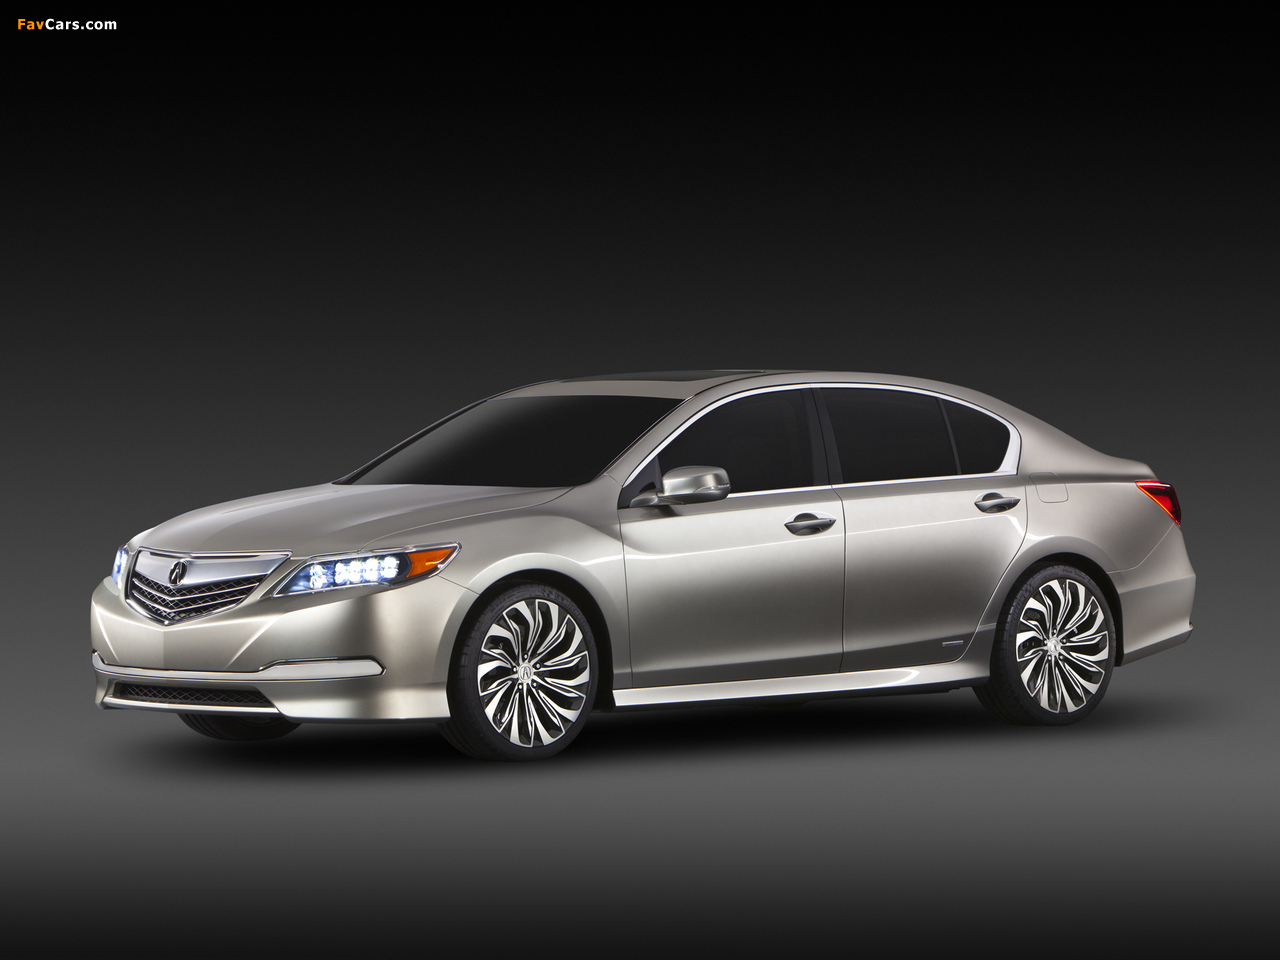 Acura RLX Concept (2012) wallpapers (1280 x 960)